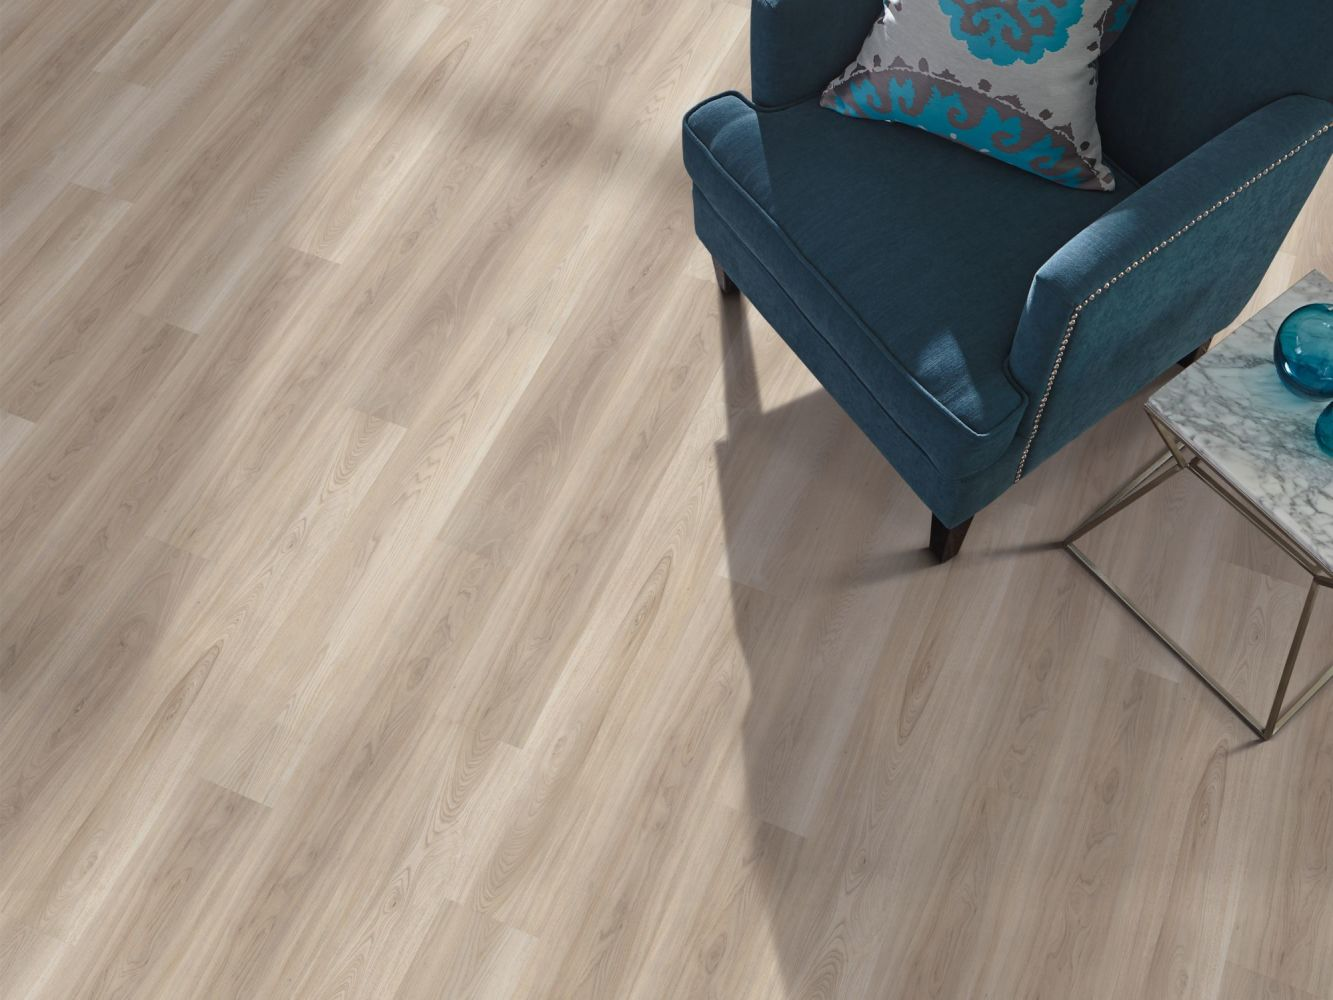 Shaw Floors Vinyl Residential Endura 512c Plus Lighthouse 05091_0736V